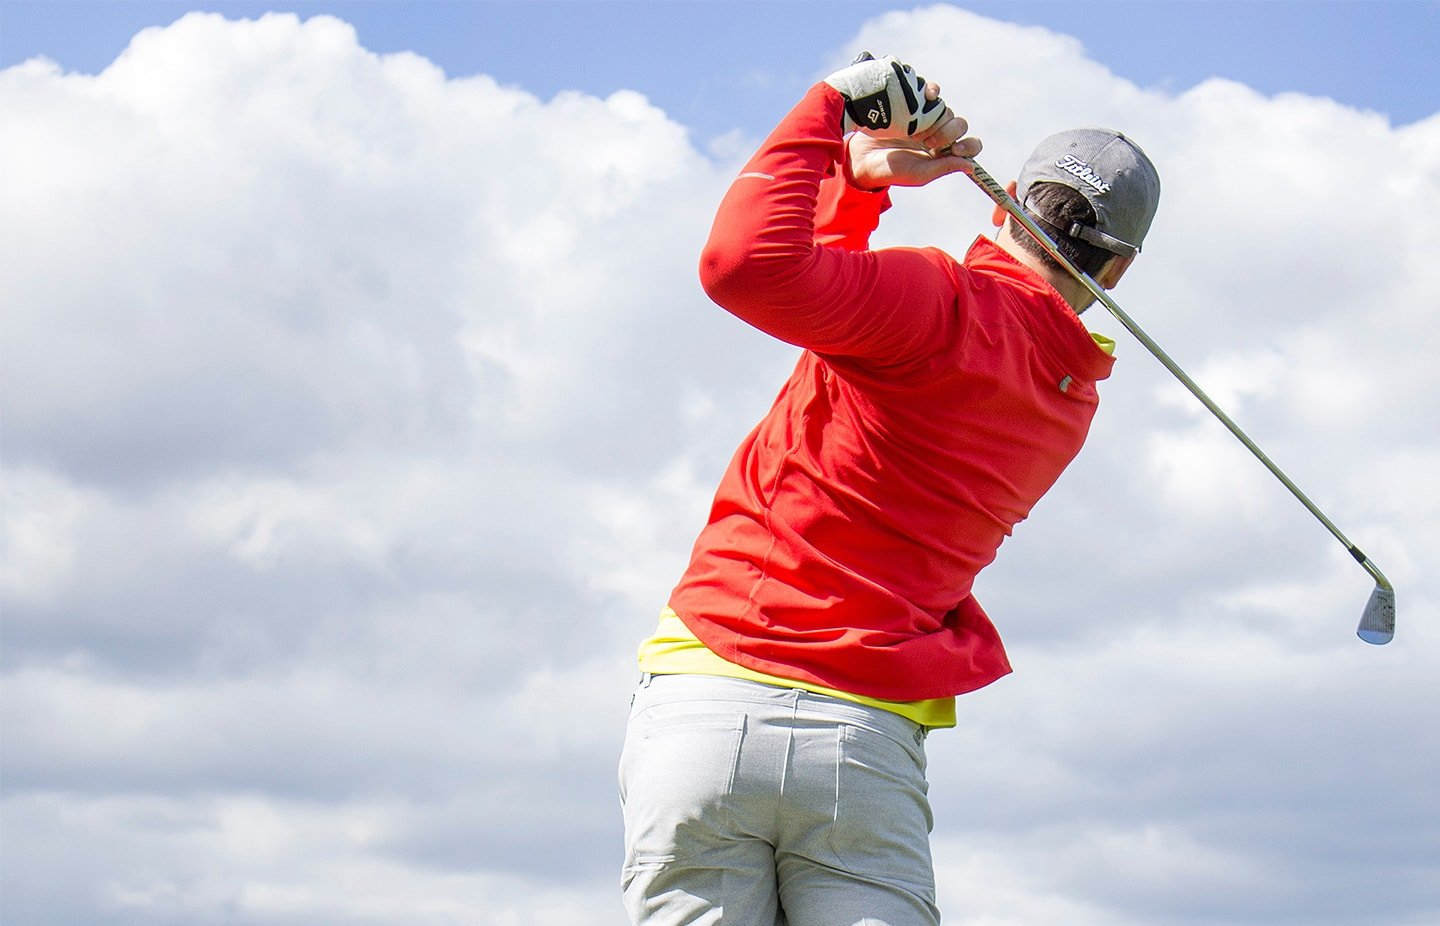 How To Fix A Slice: 7 Simple Steps To A Beautiful Ball Flight